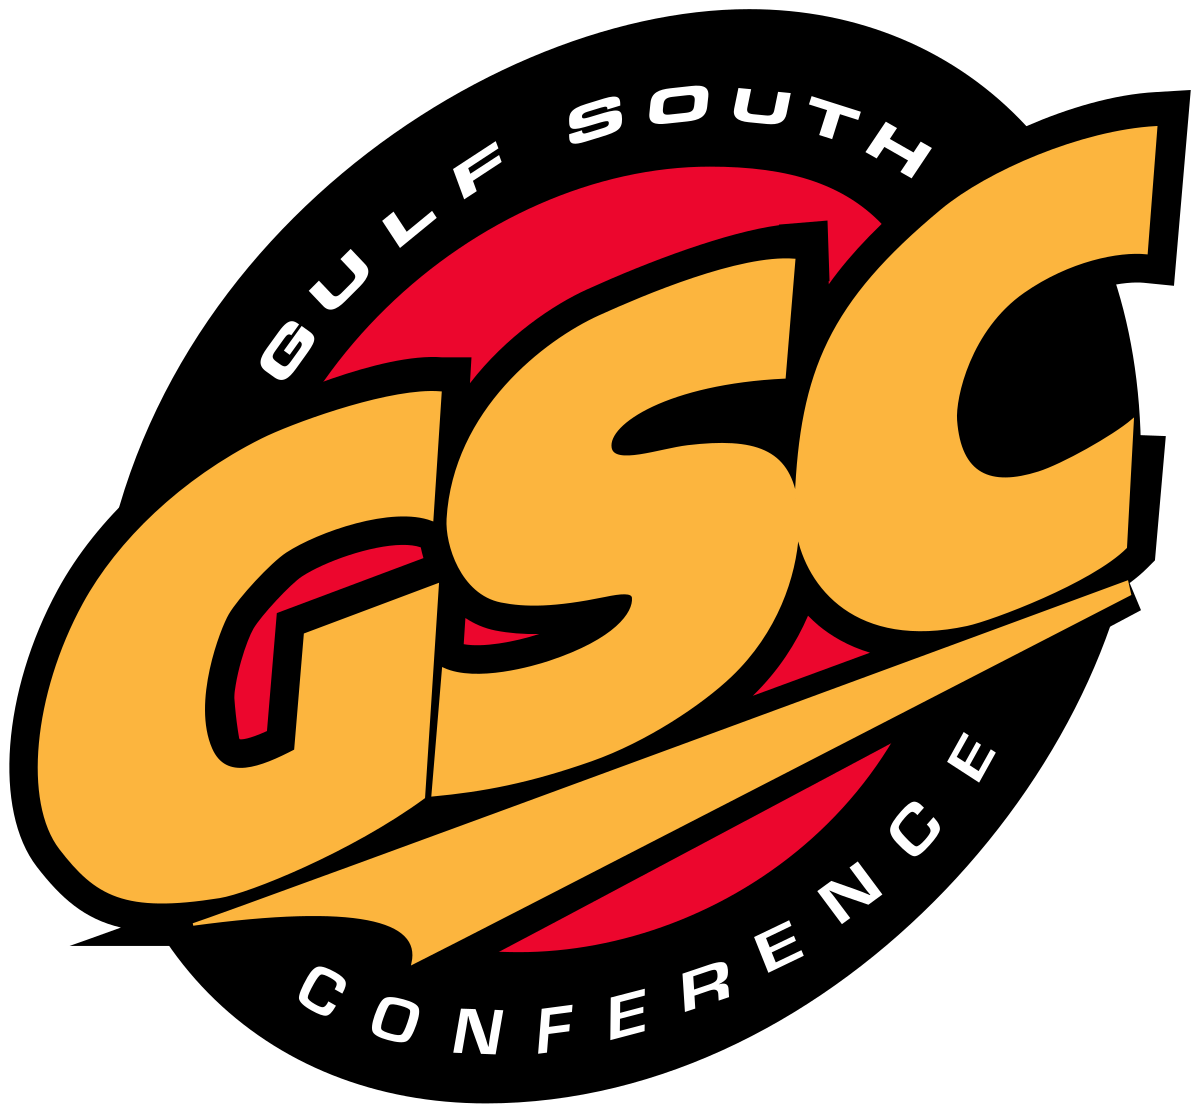 Gulf_South_Conference_logo